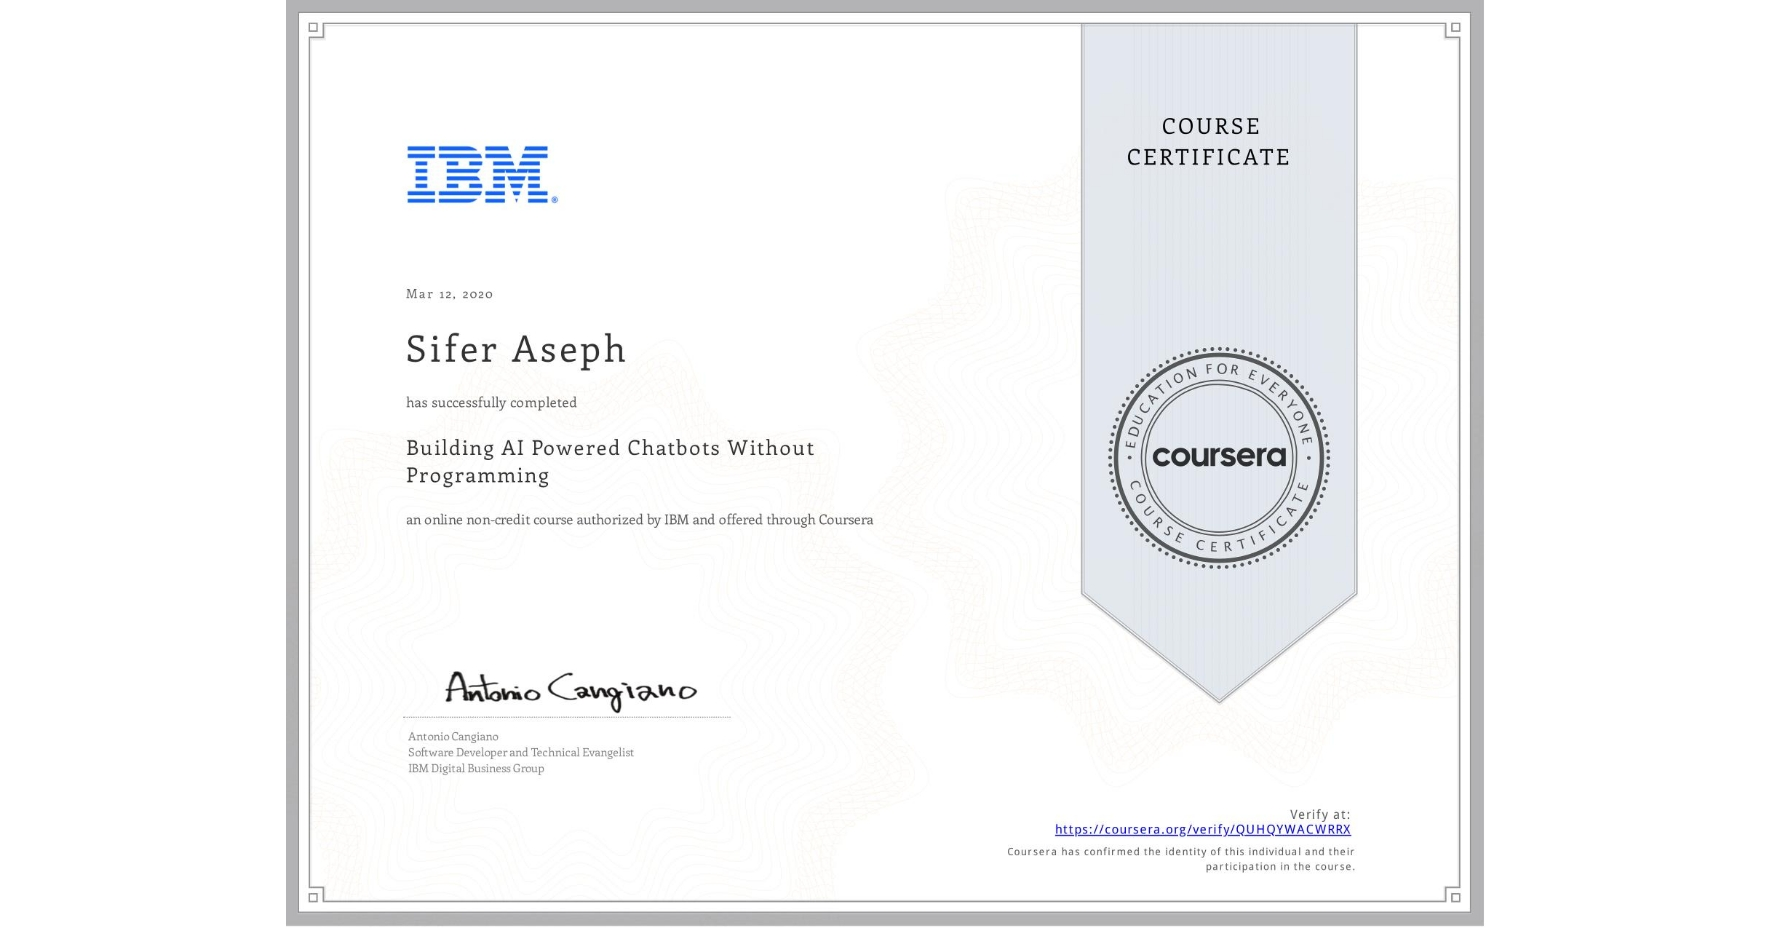 View certificate for Sifer Aseph, Building AI Powered Chatbots Without Programming, an online non-credit course authorized by IBM and offered through Coursera